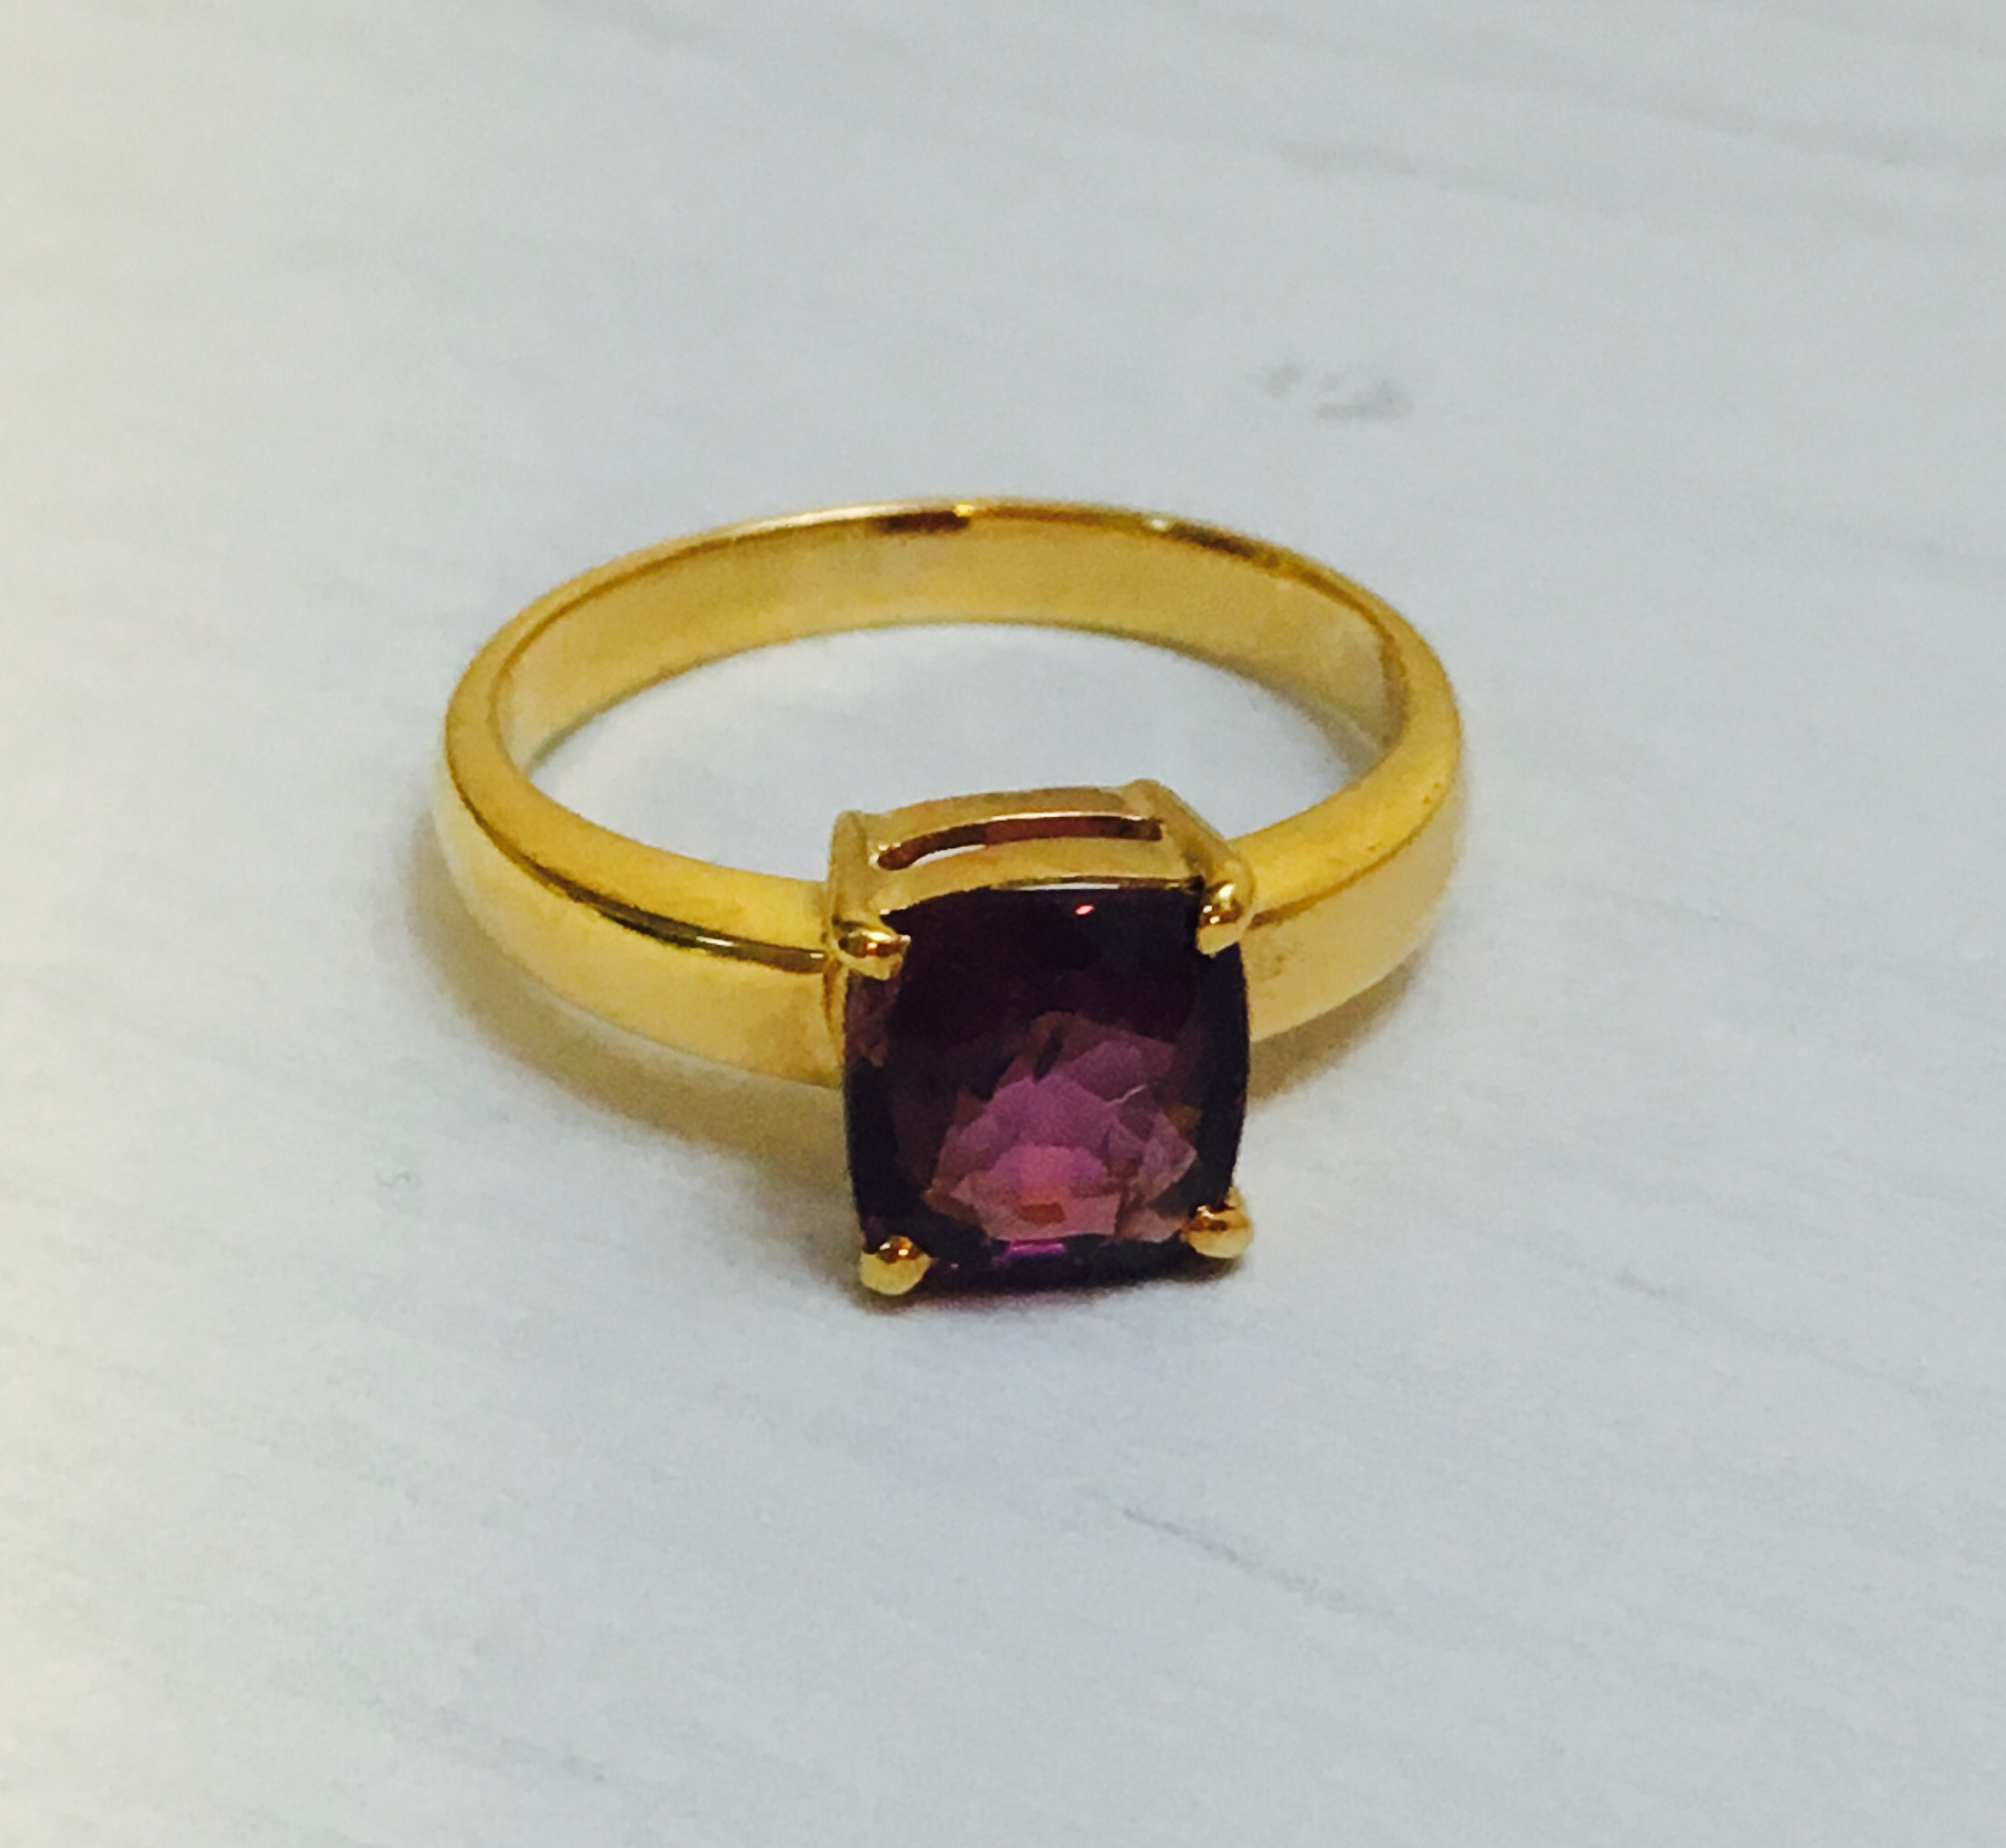 Mia-Ruby-Garnet- Ring- Gold.- GSSR0101jpg.jpg